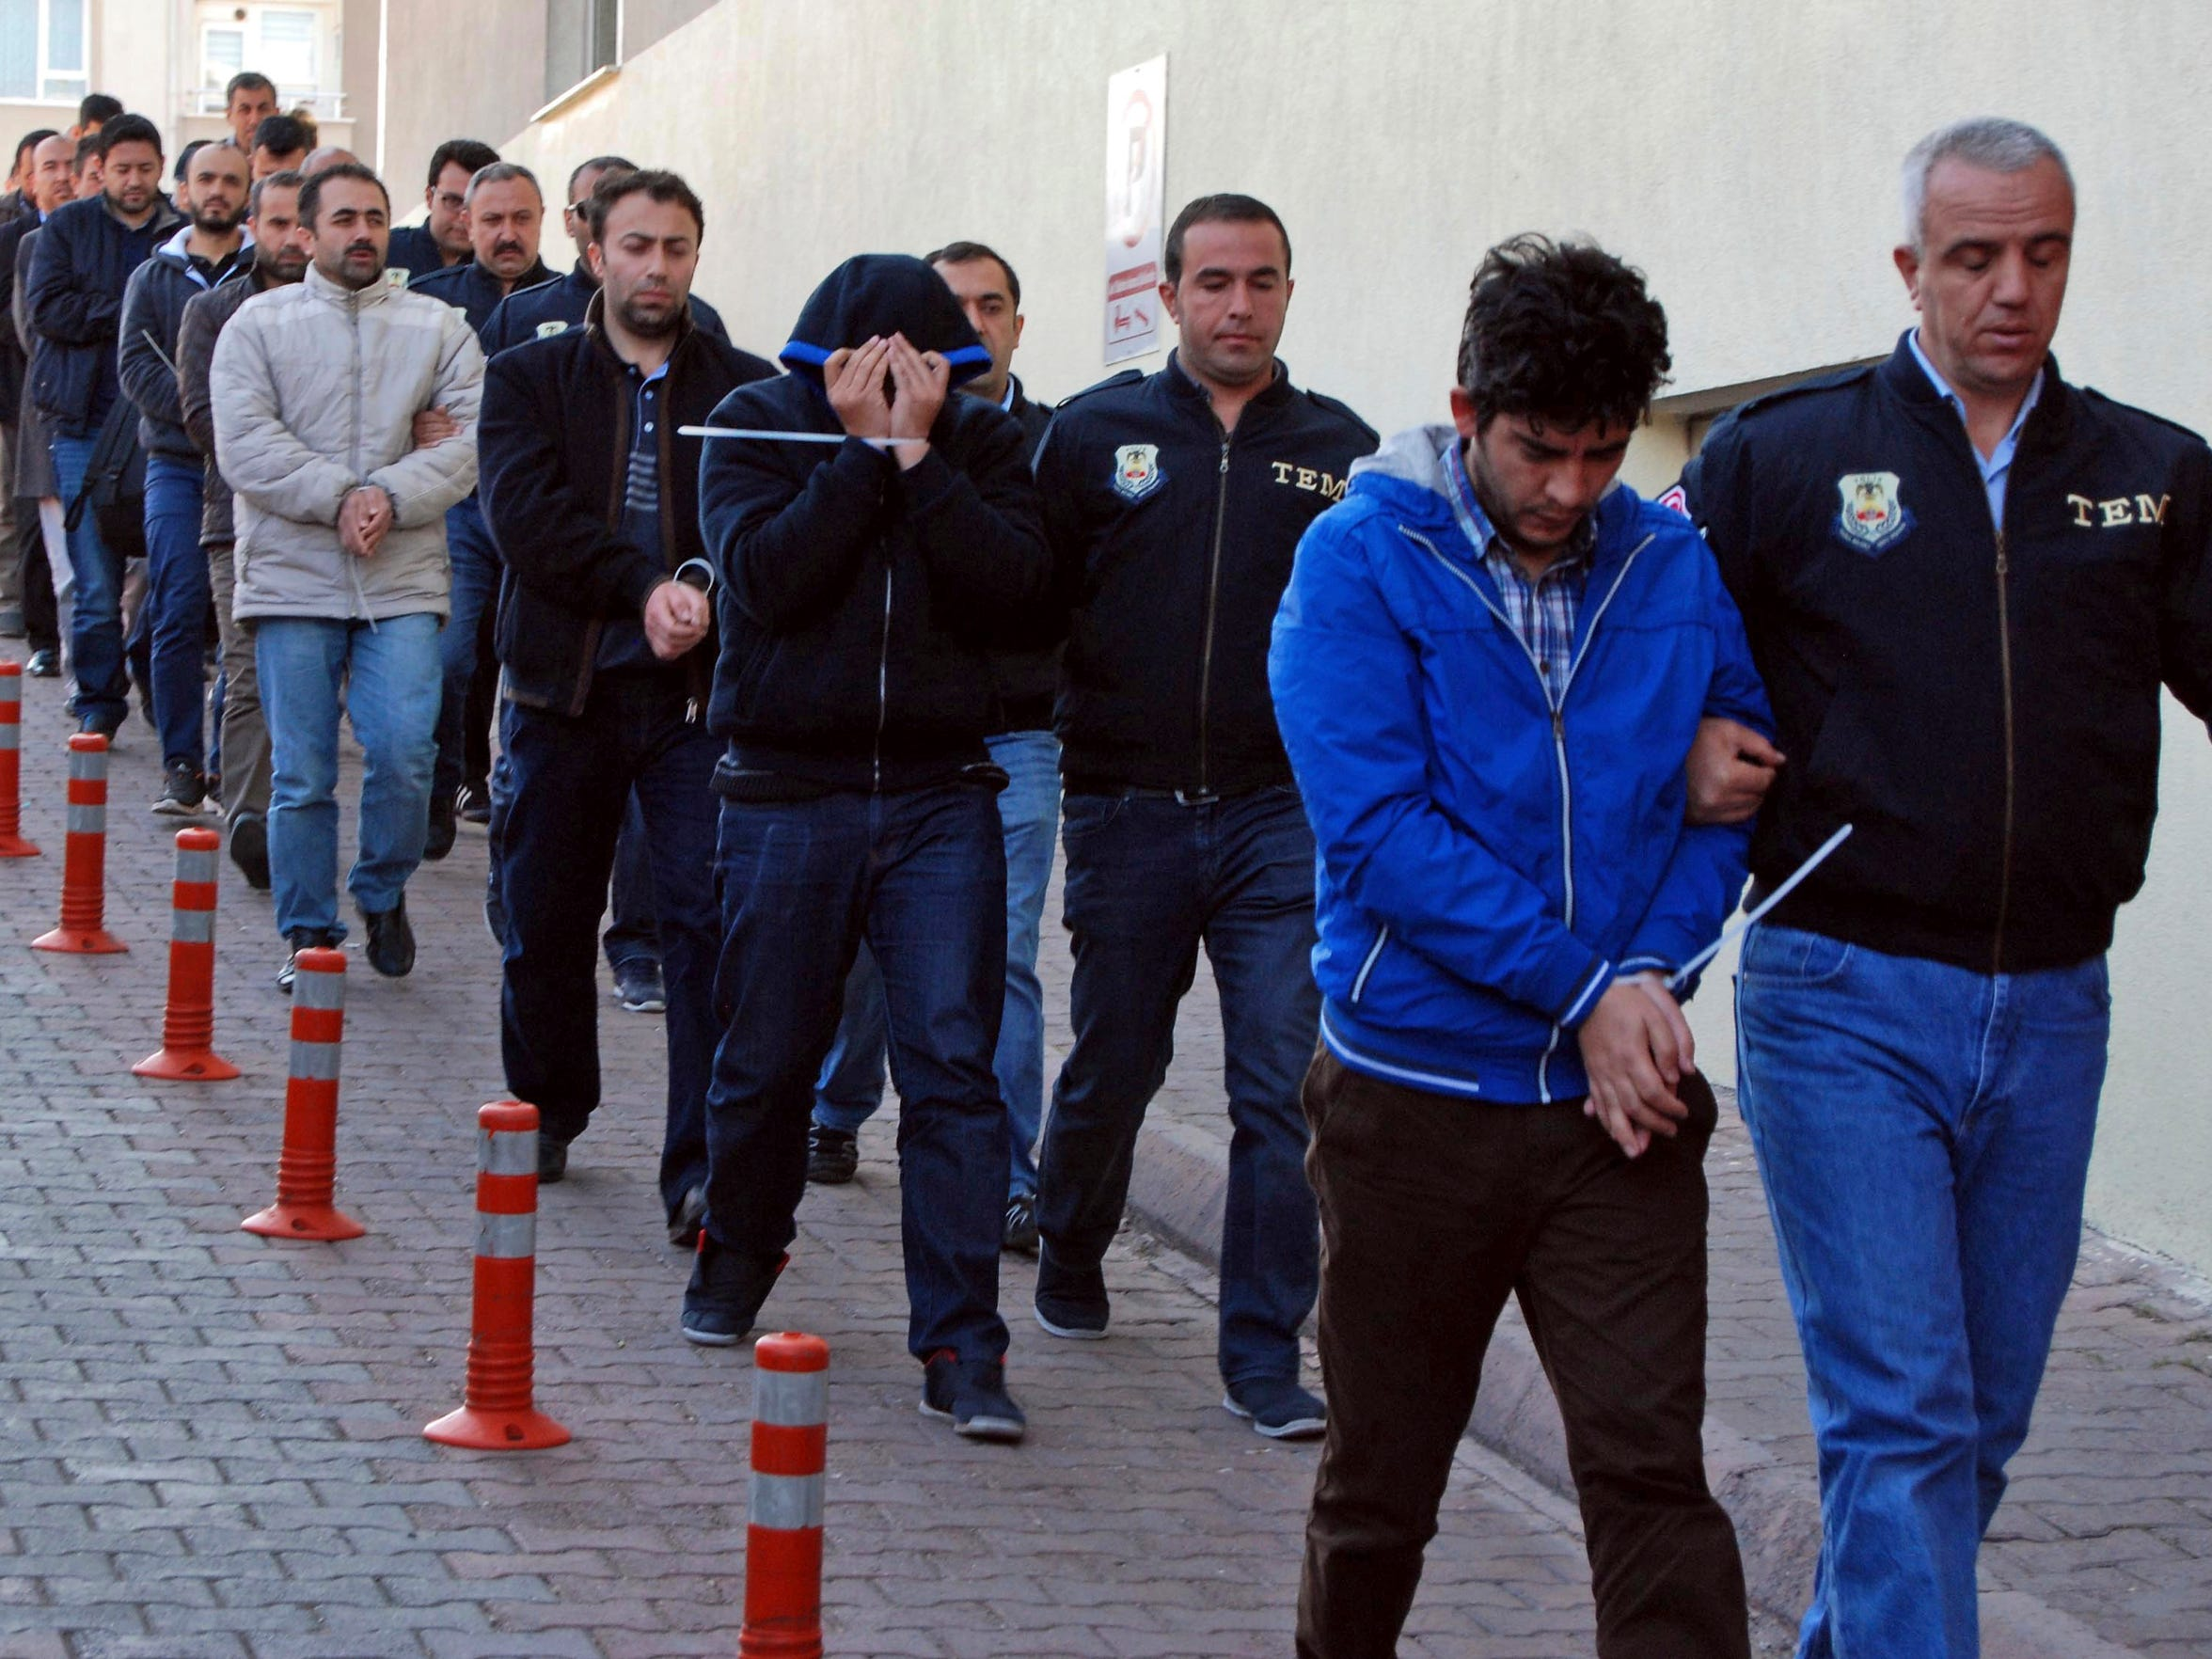 Police officers escort people, arrested because of suspected links to U.S.-based cleric Fethullah Gulen, in Kayseri, Turkey,  April 26. Police launched simultaneous operations across the country on Wednesday, detaining hundreds of people with suspected links to U.S.-based cleric Fethullah Gulen. The suspects are allegedly Gulen operatives who directed followers within the police force.